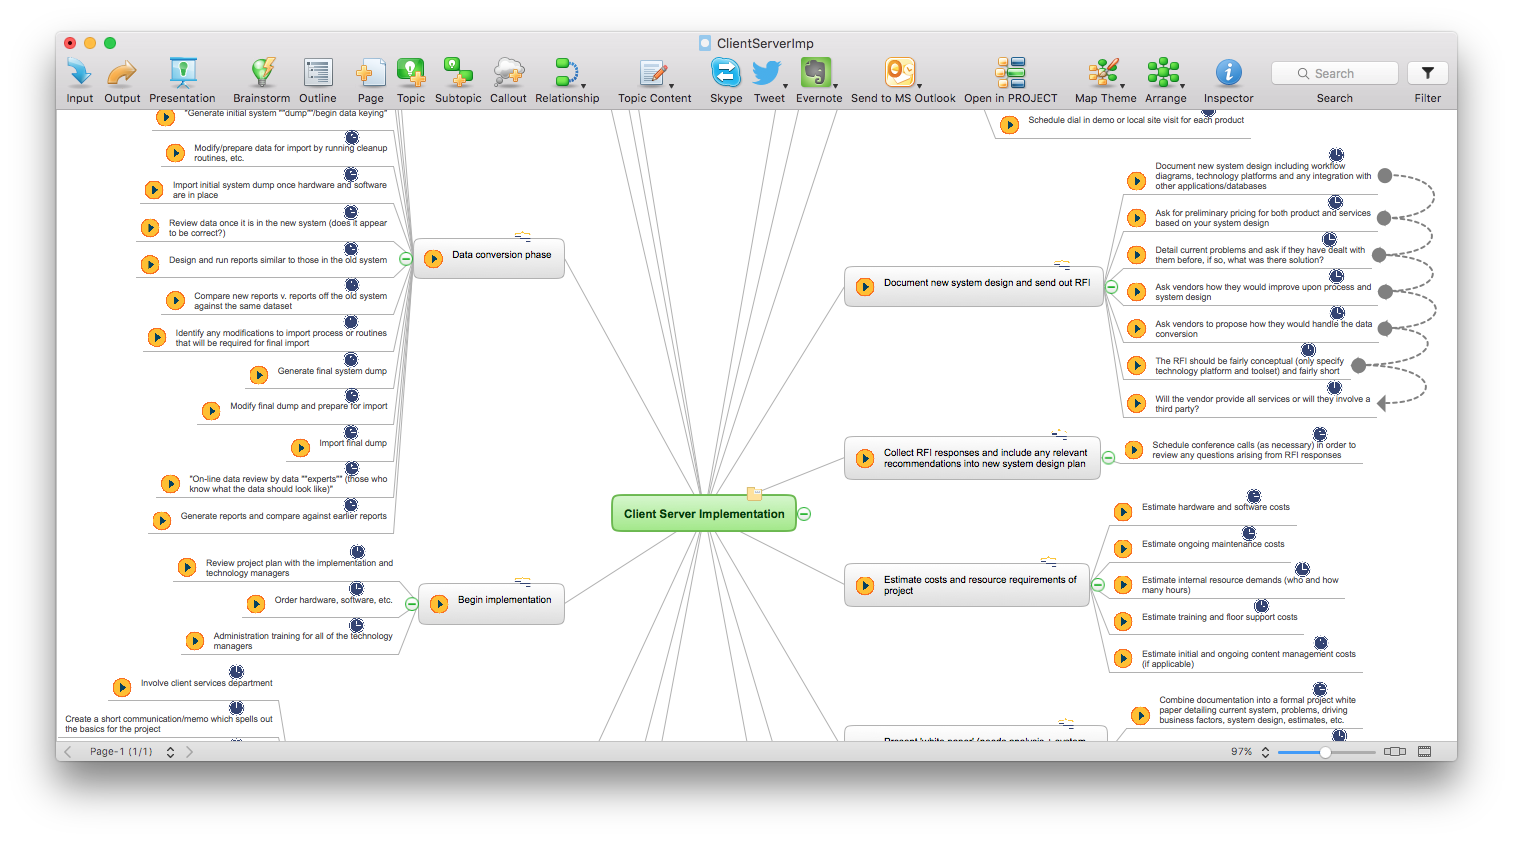 Mind map generated from MS Project file